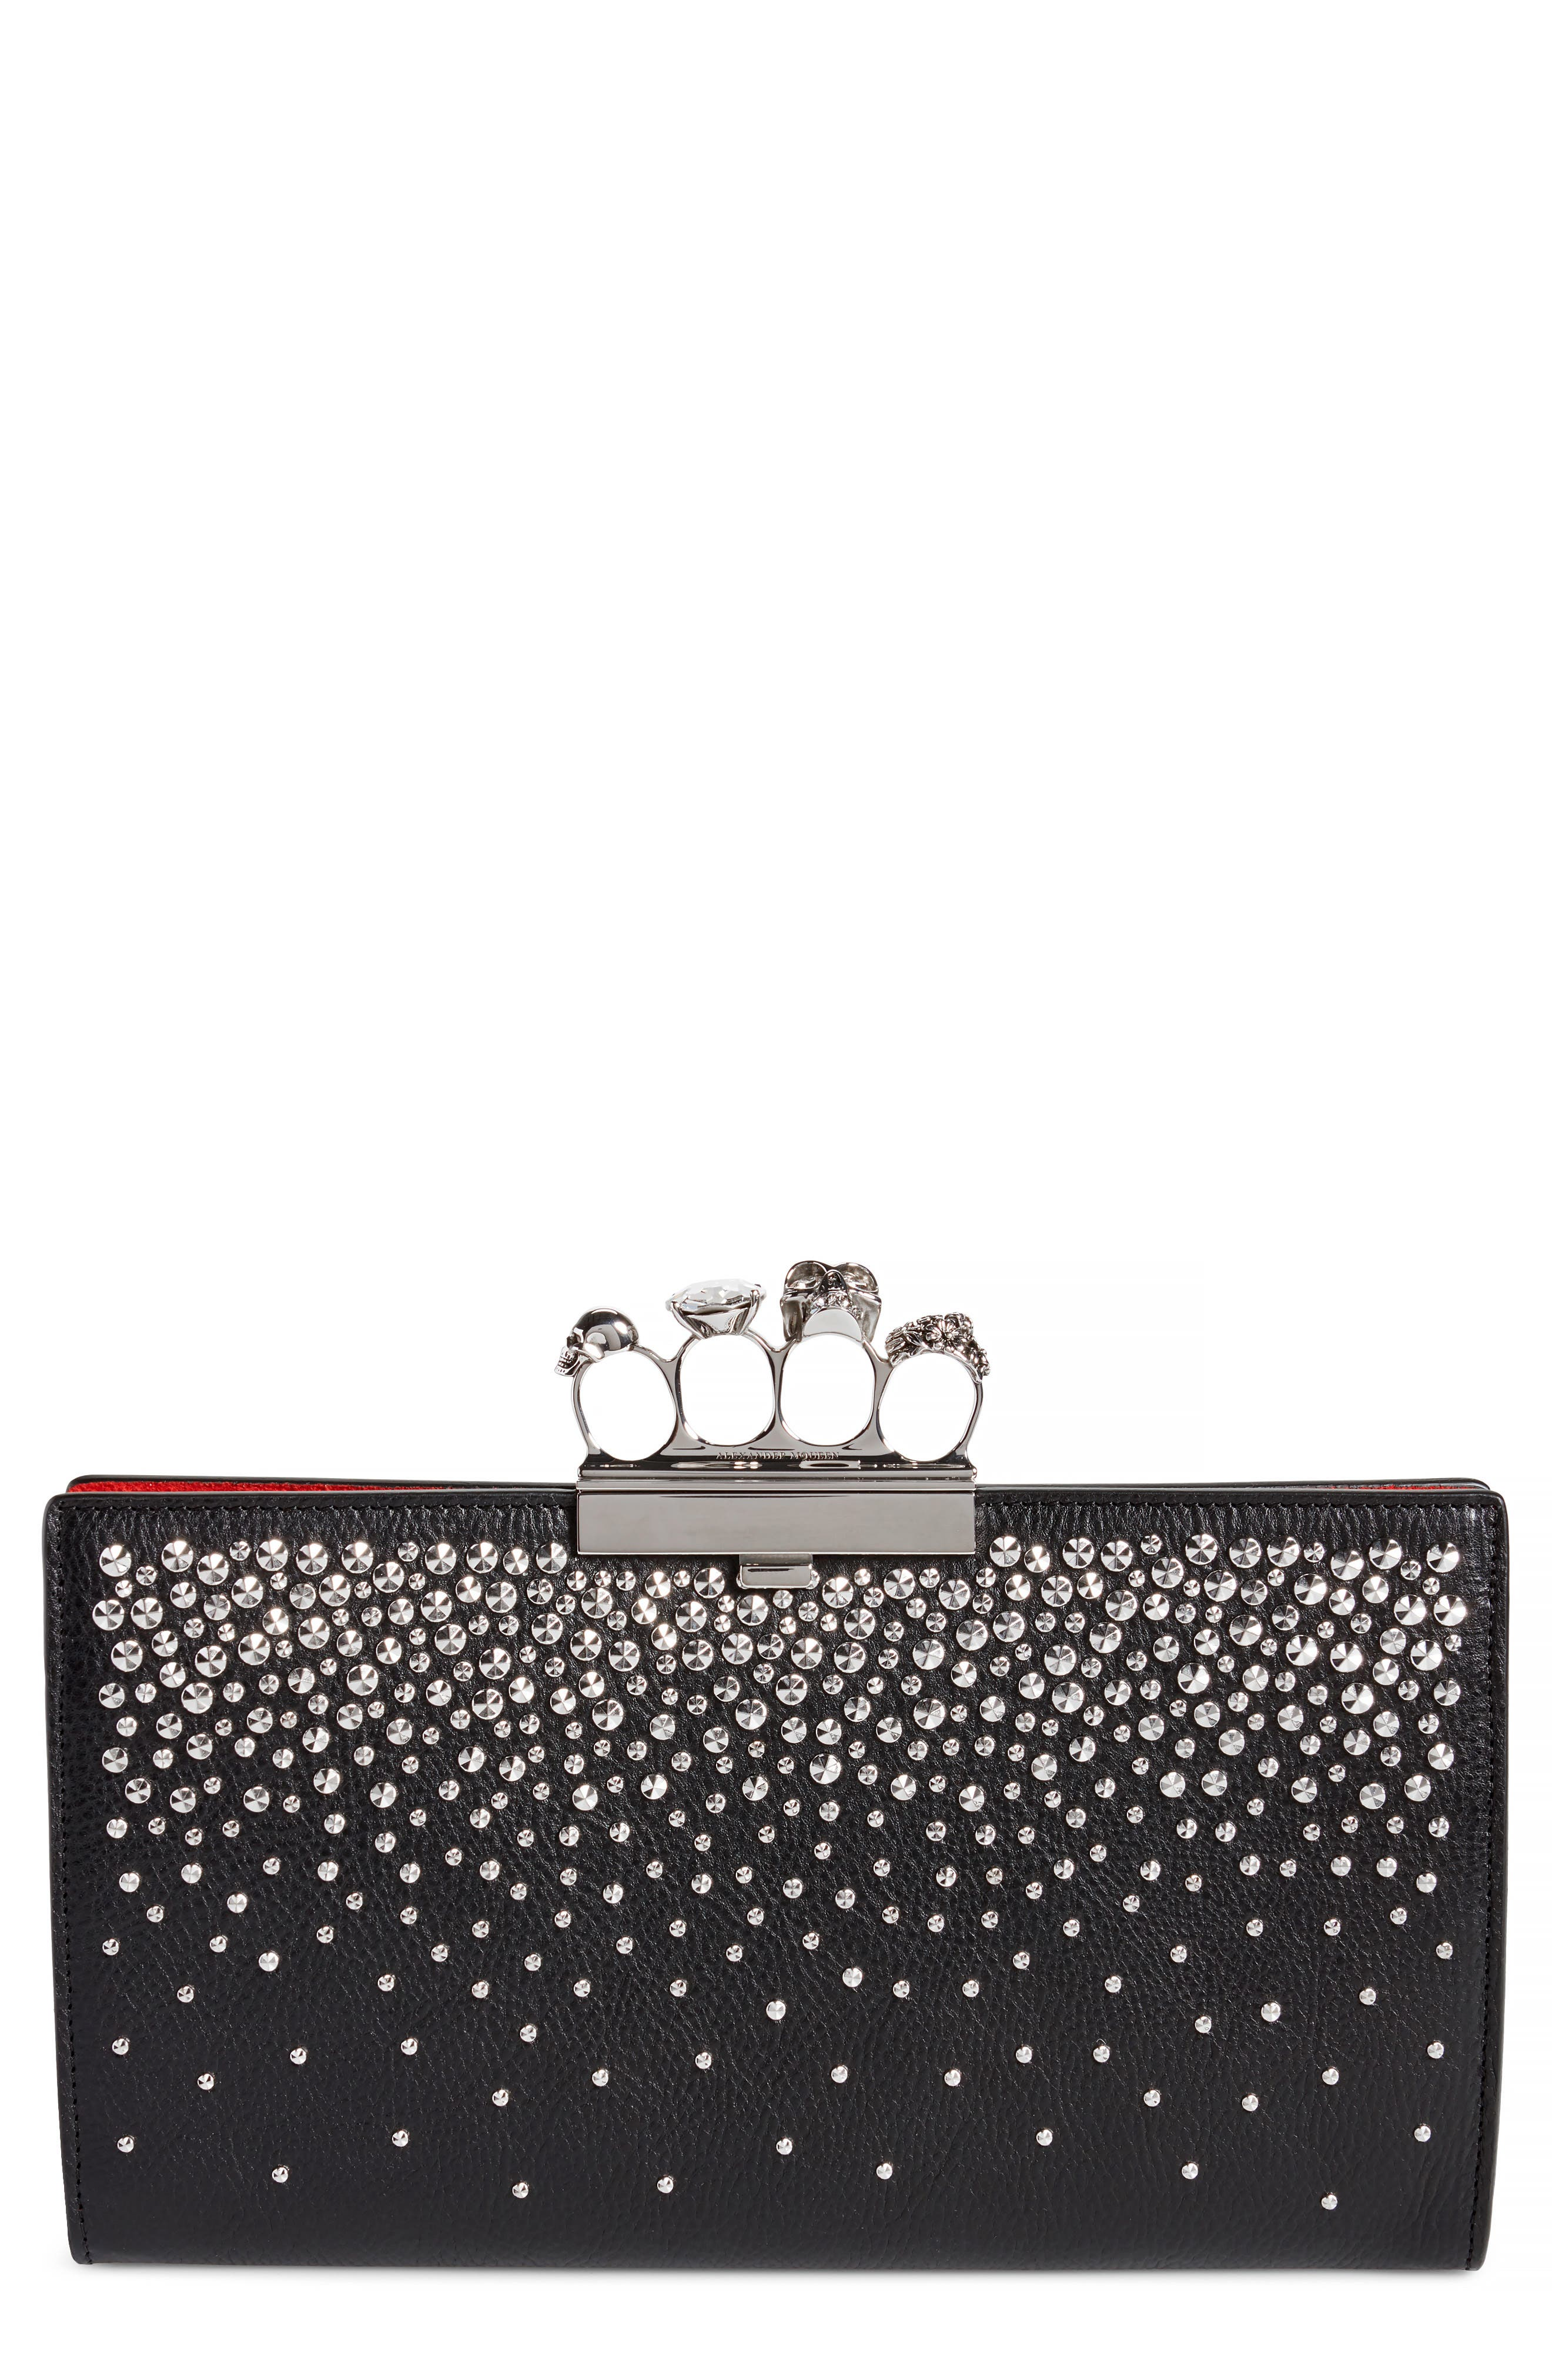 Main Image - Alexander McQueen Studded Knuckle Clasp Leather Clutch